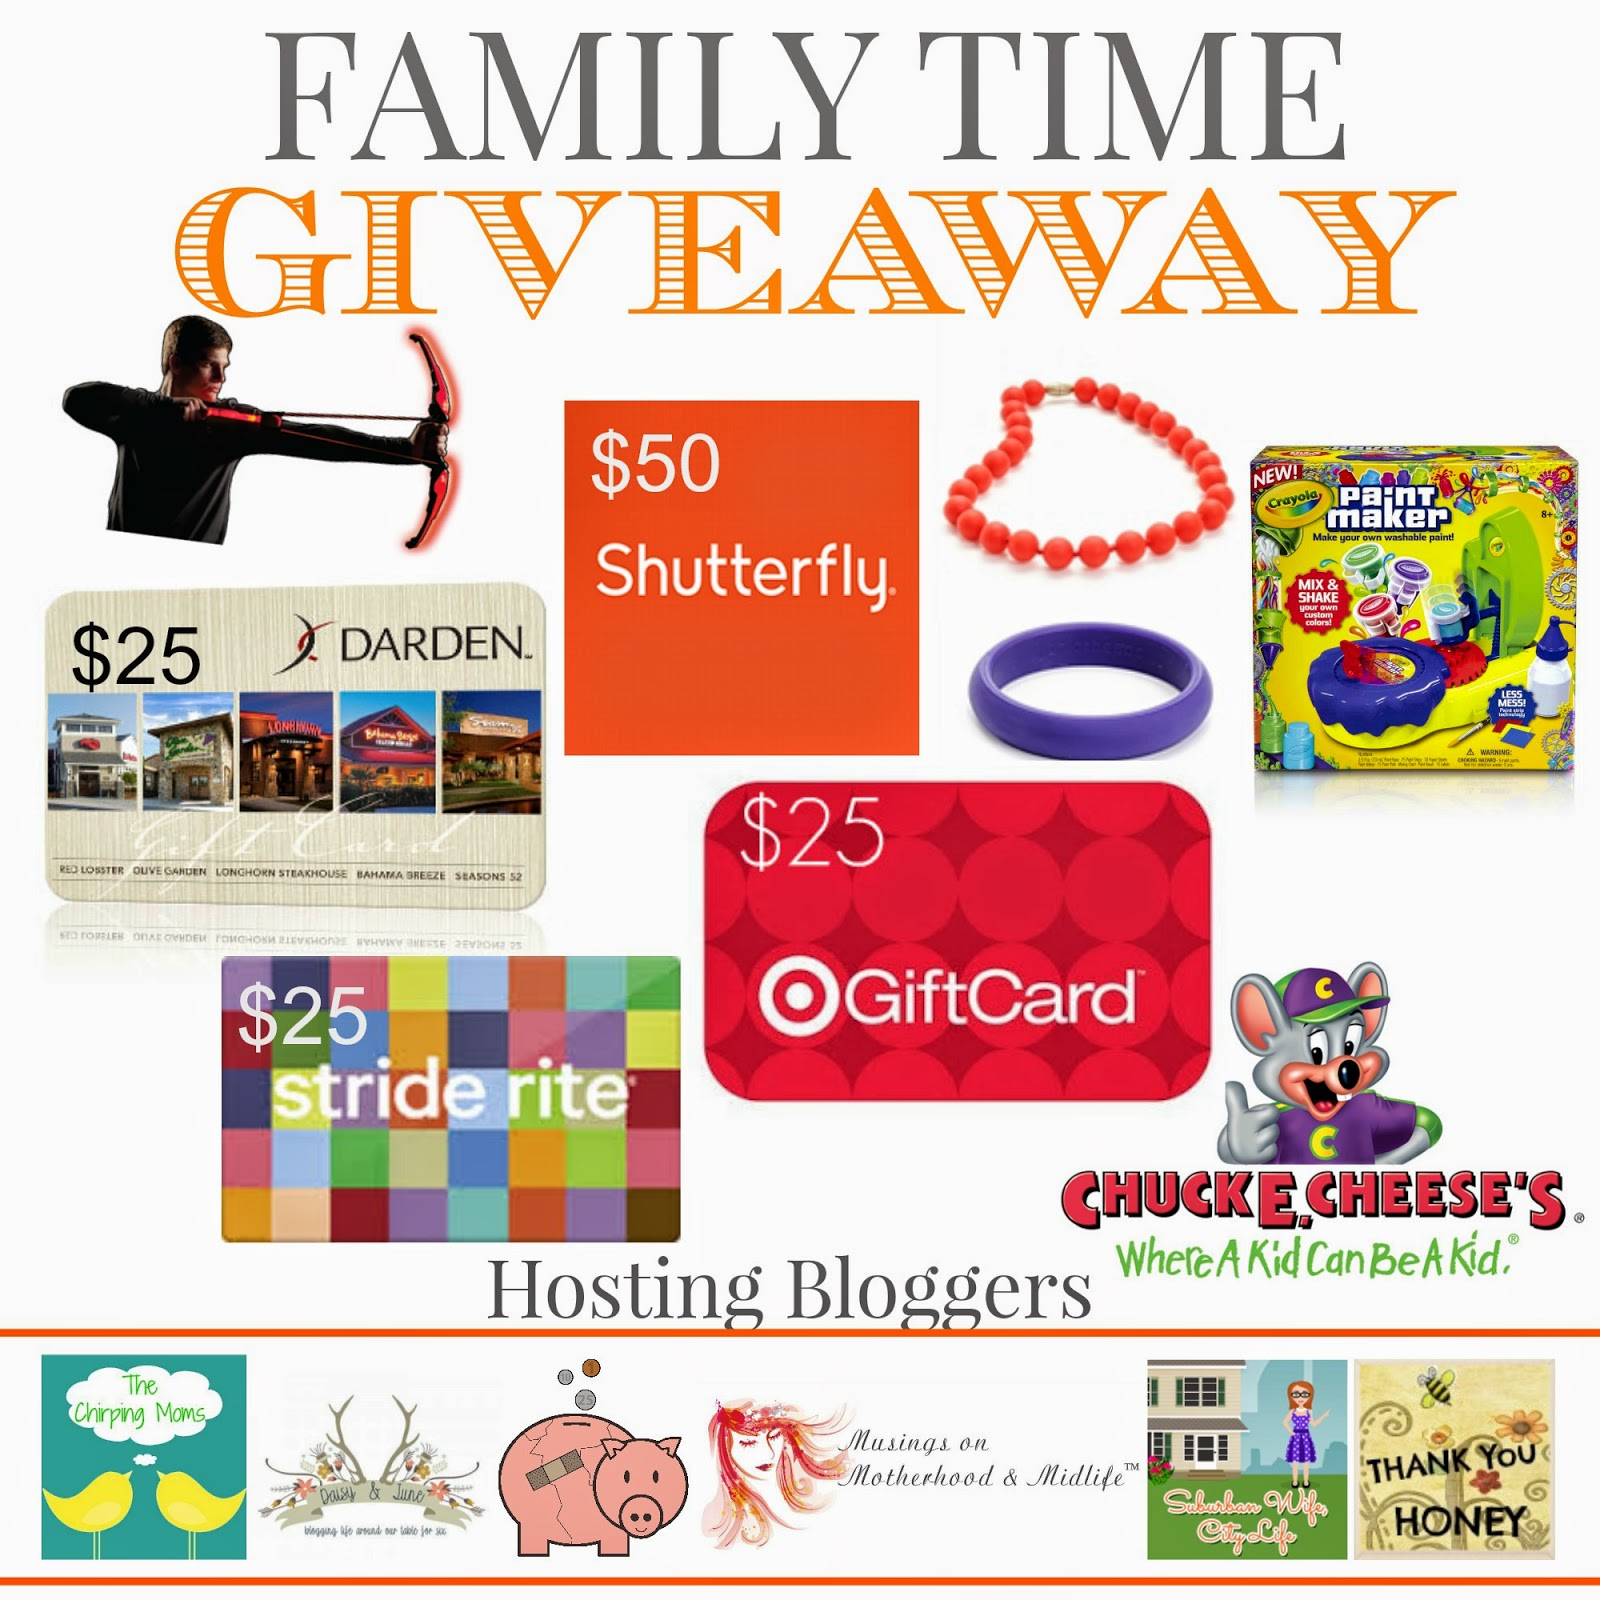 familytime Family Time Giveaway ($250 in Prizes)